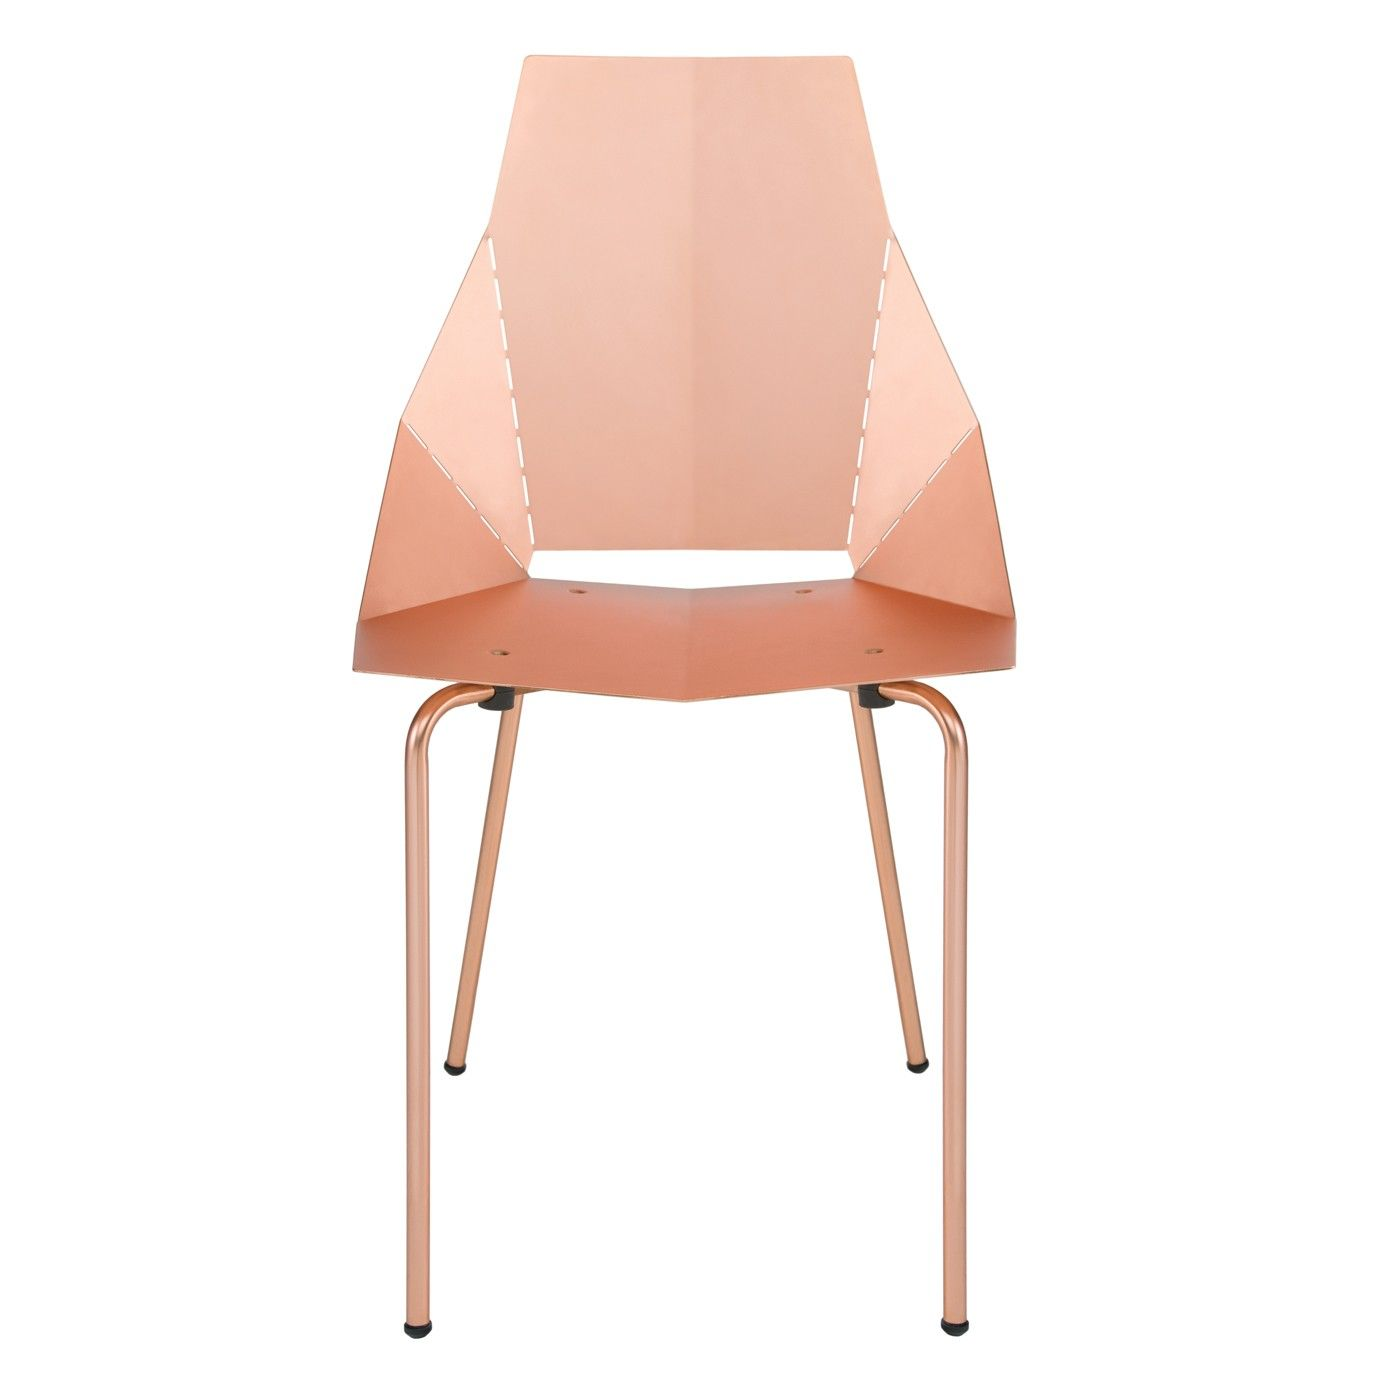 Copper Real Good Chair from bludot